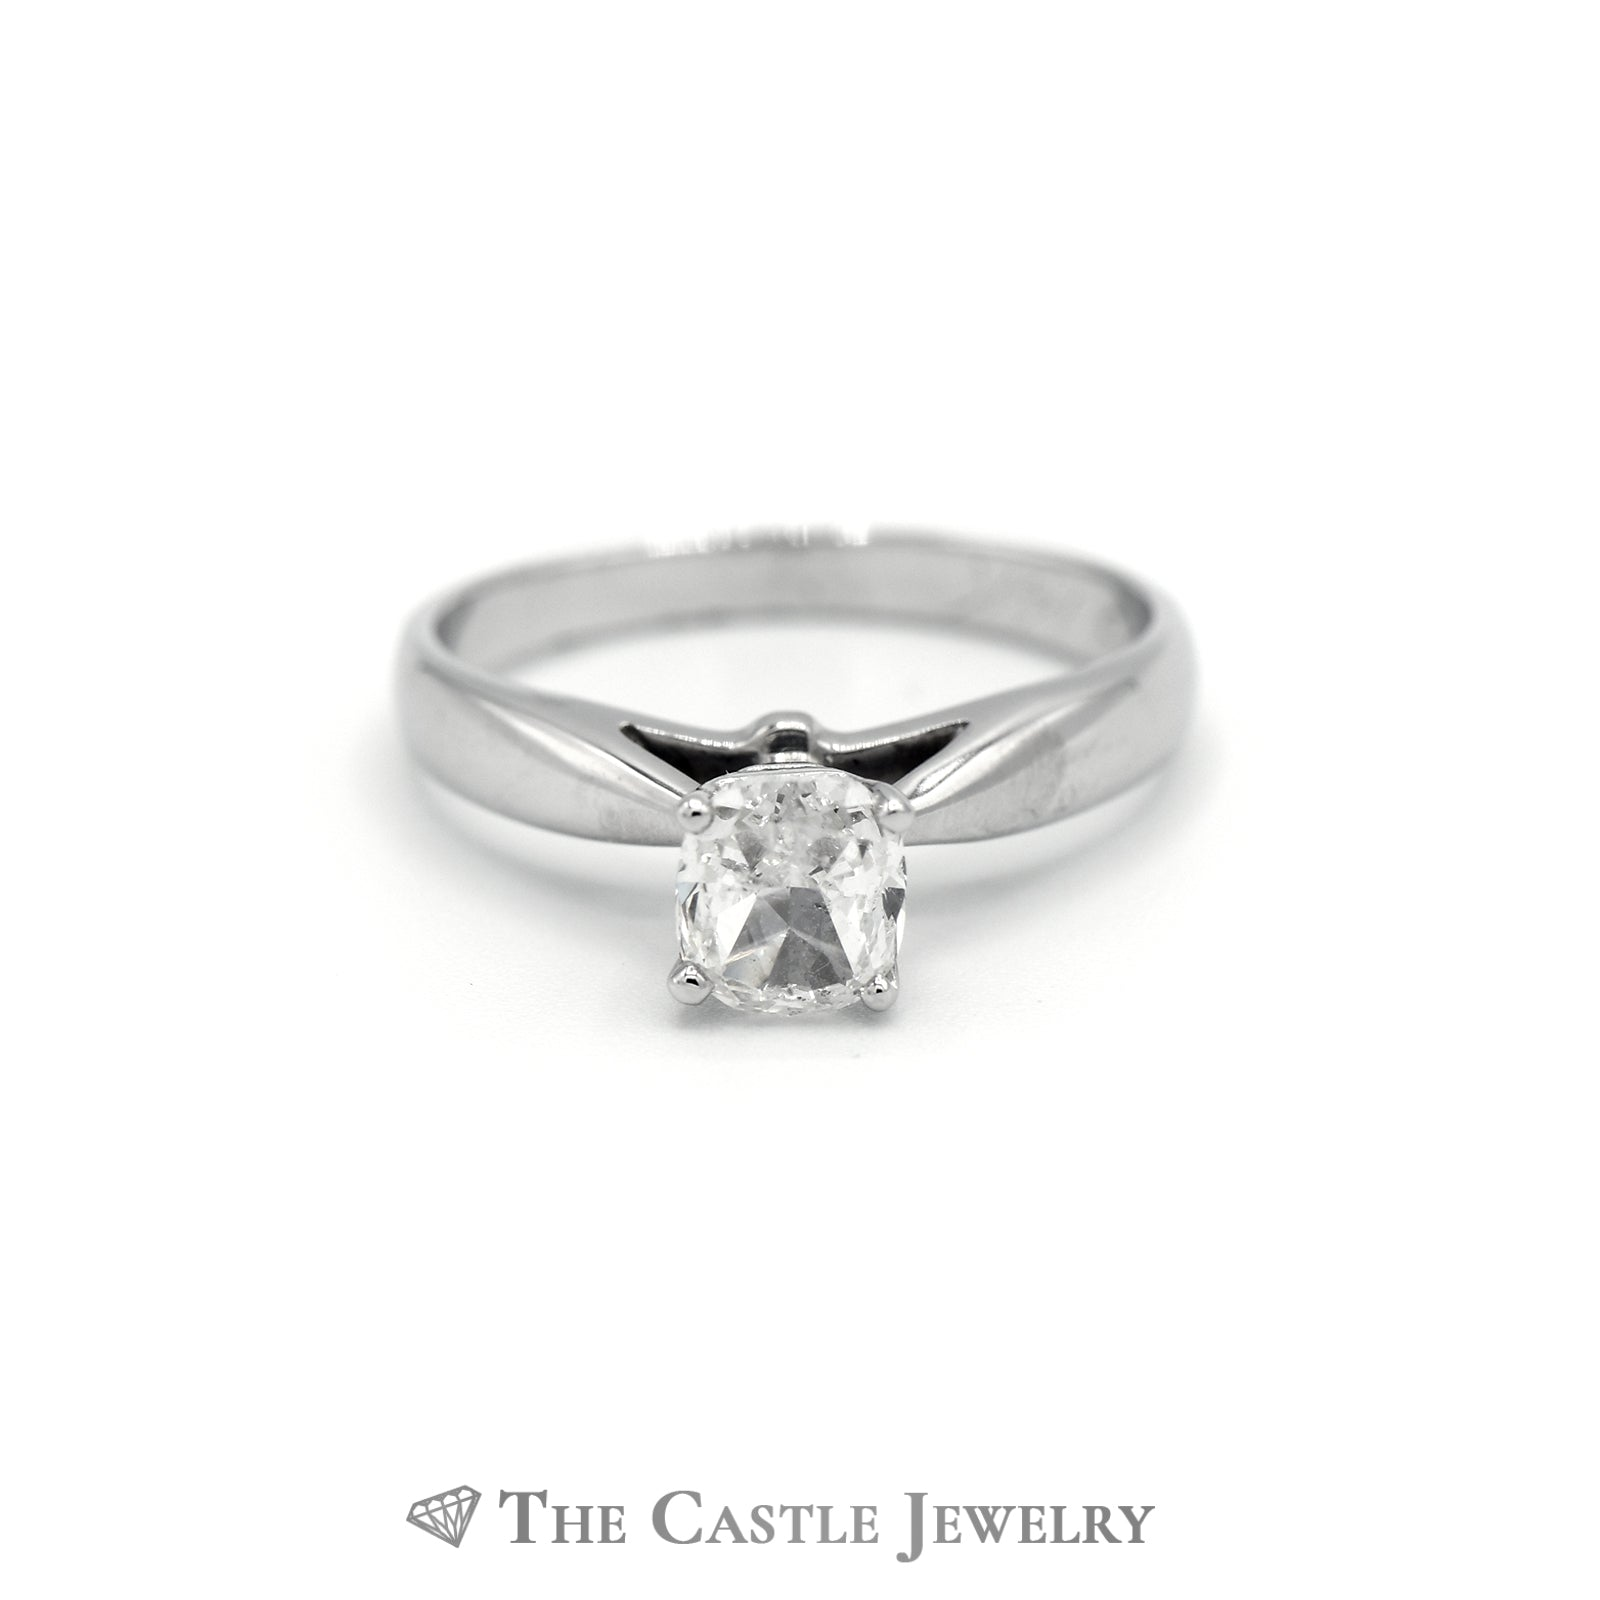 1ct Cushion Cut Diamond Solitaire Engagement Ring in 14k White Gold